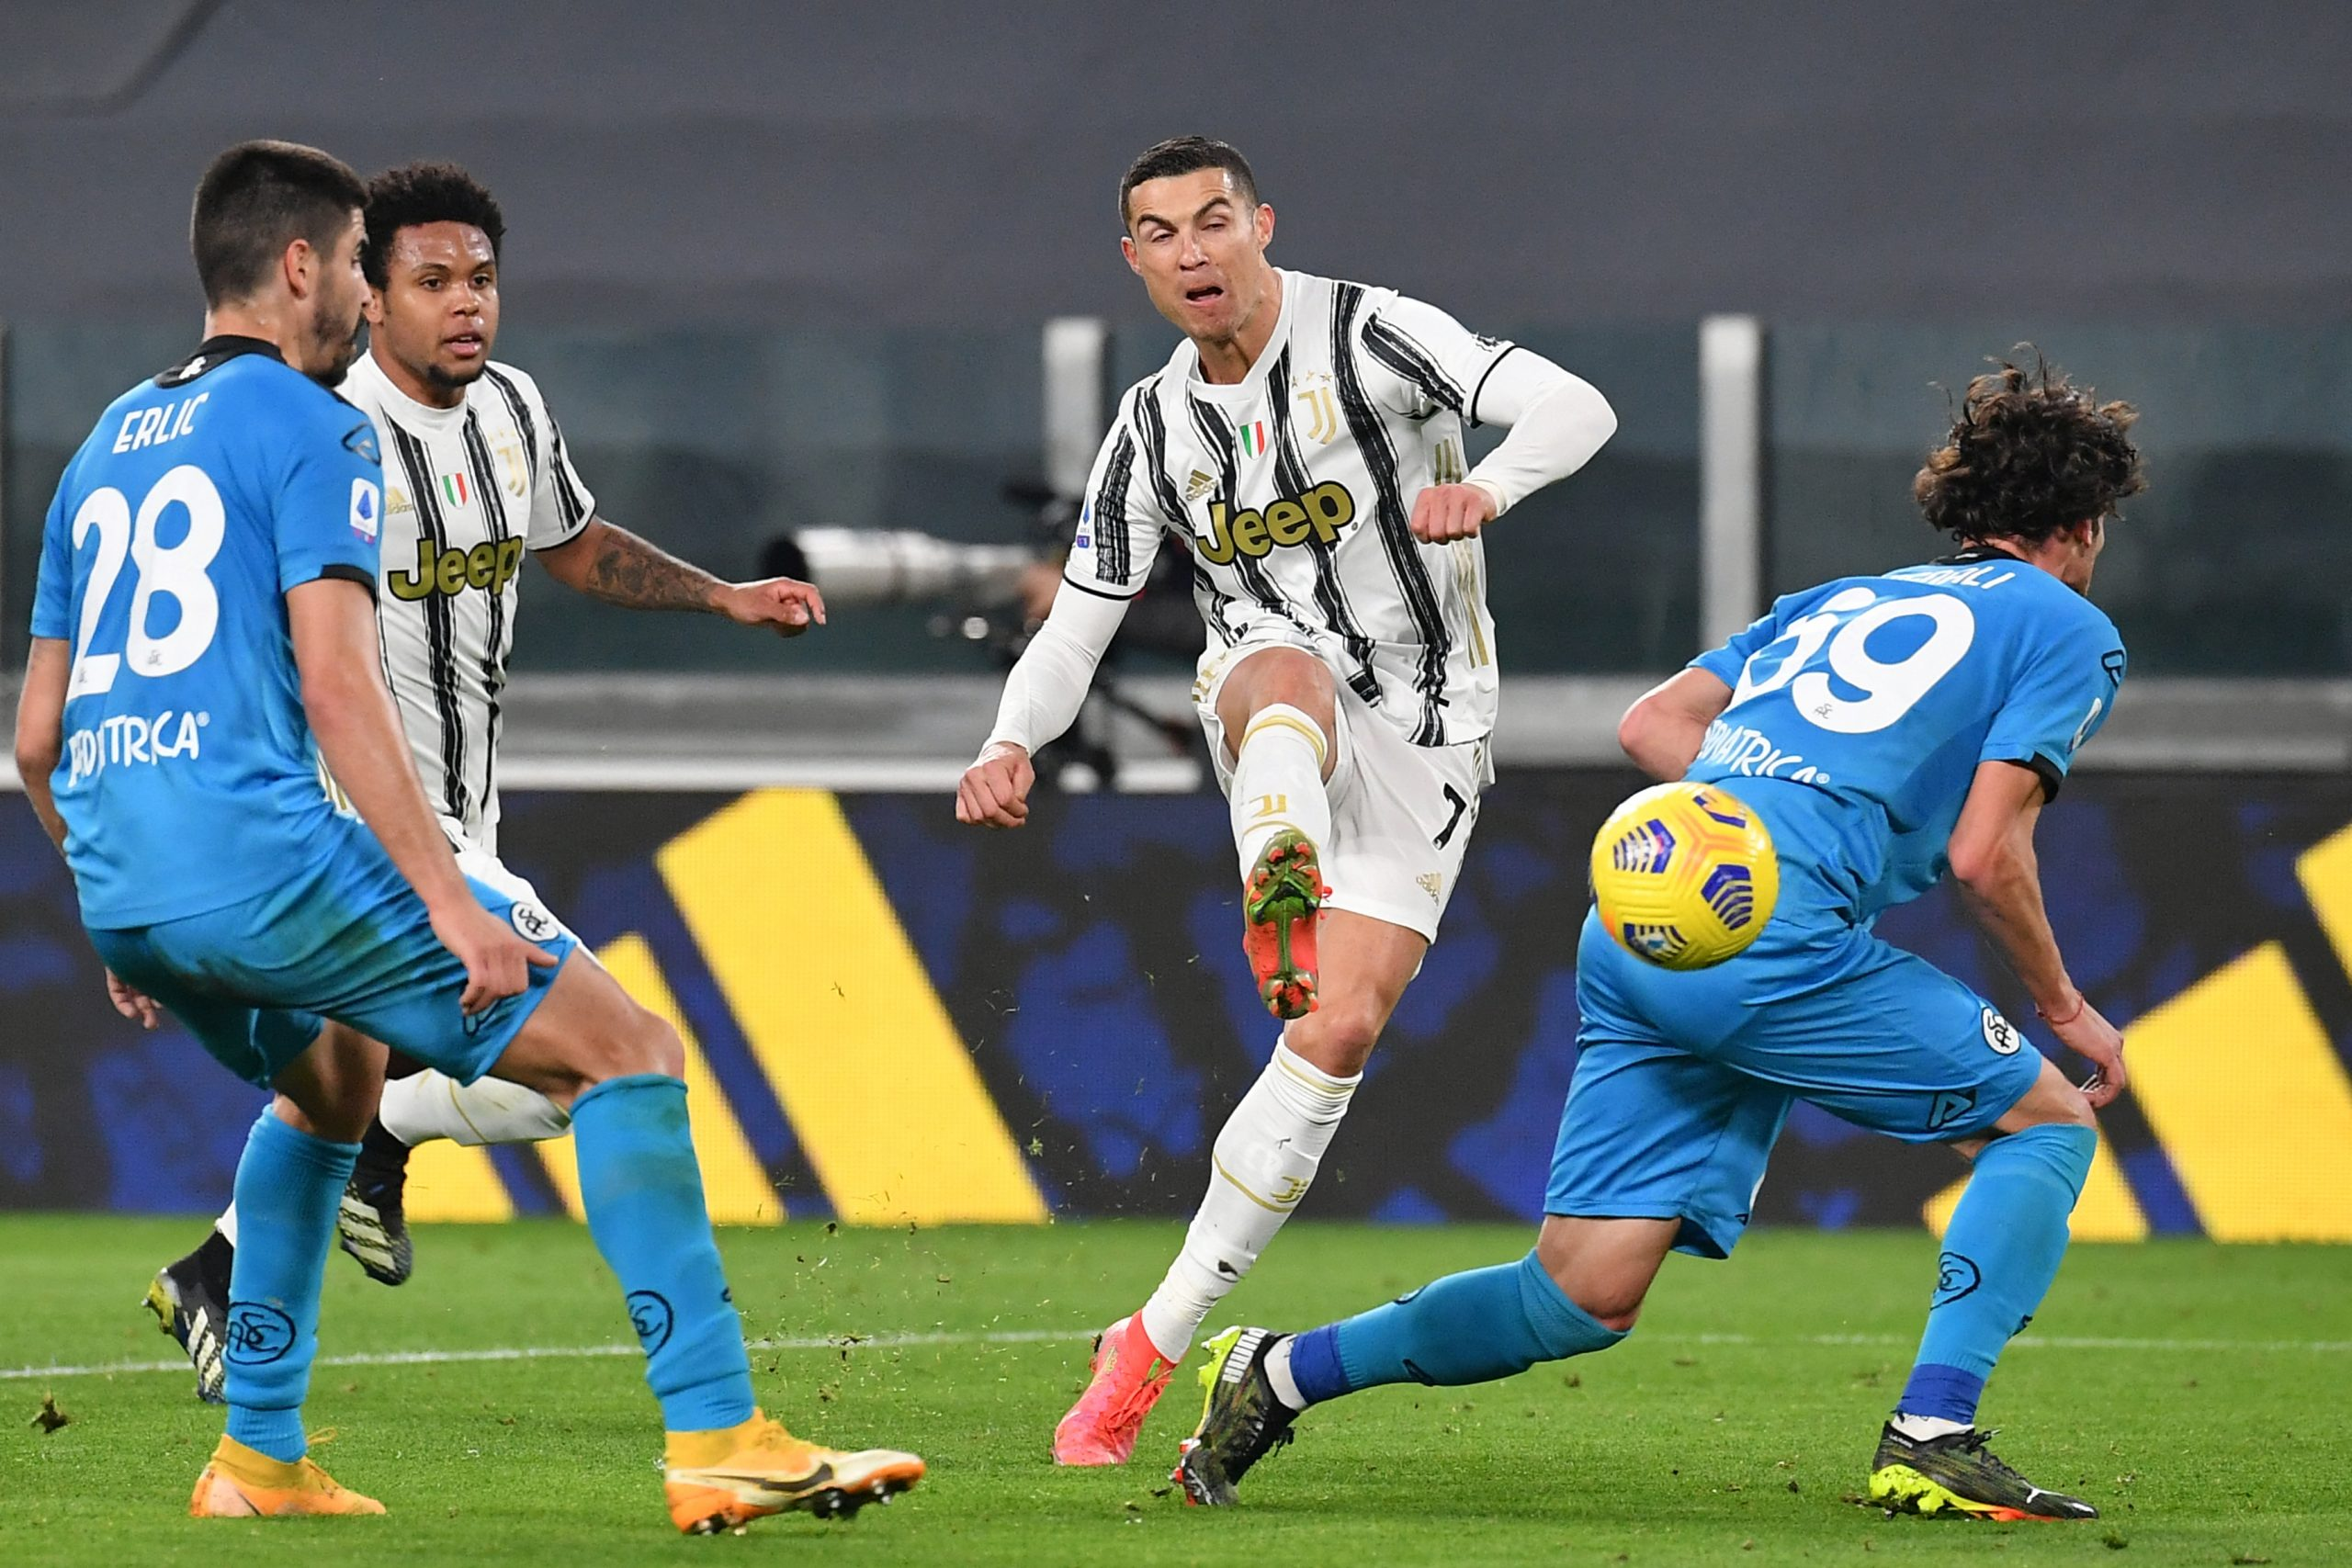 Juve boost hopes of 10th straight title with win over Spezia - SportsDesk